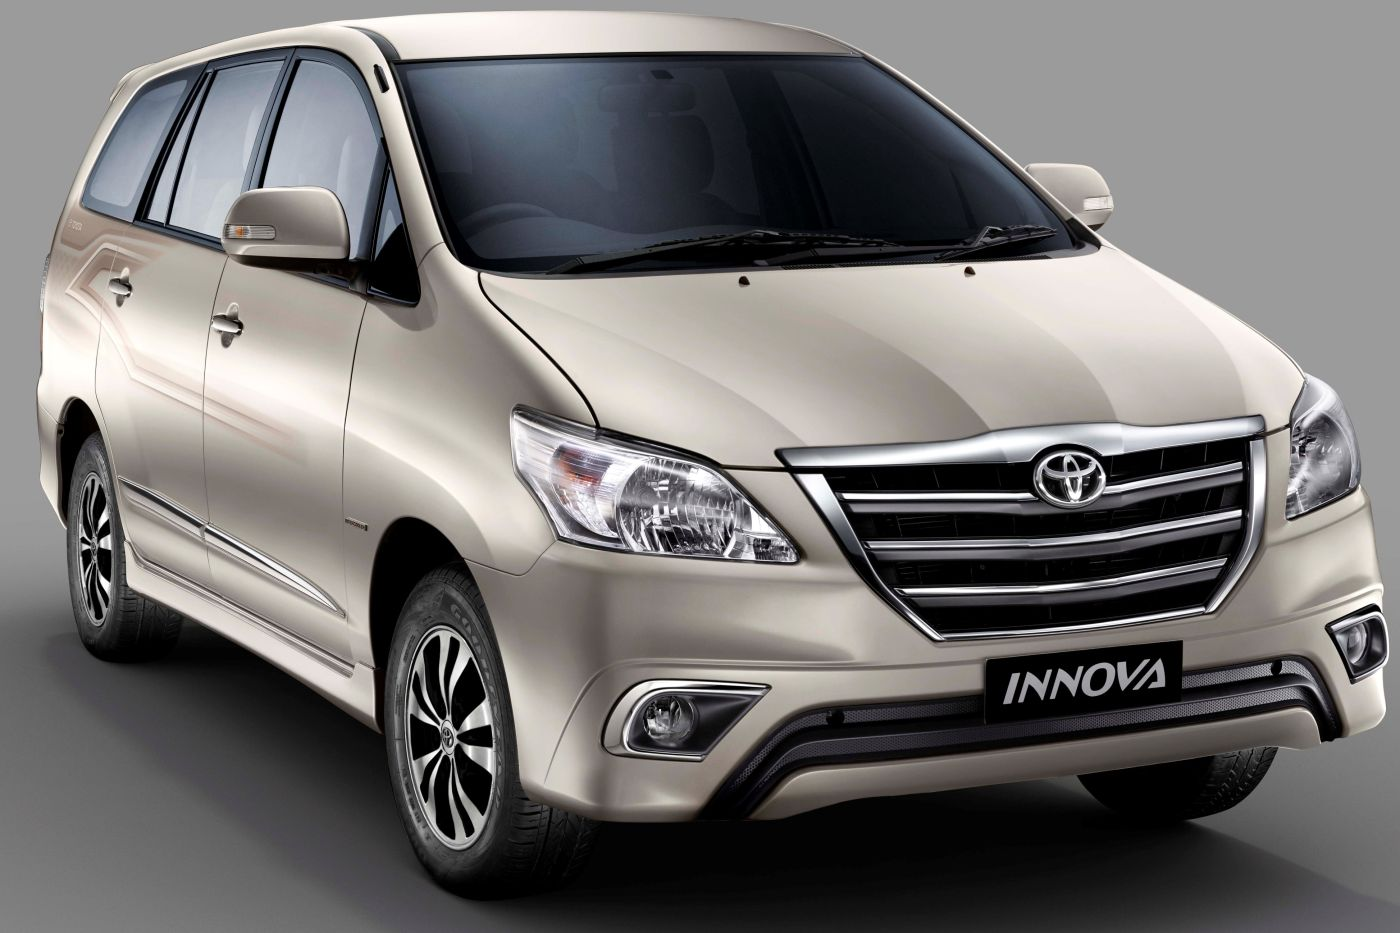 All New Innova 2015 Image | Autos Post